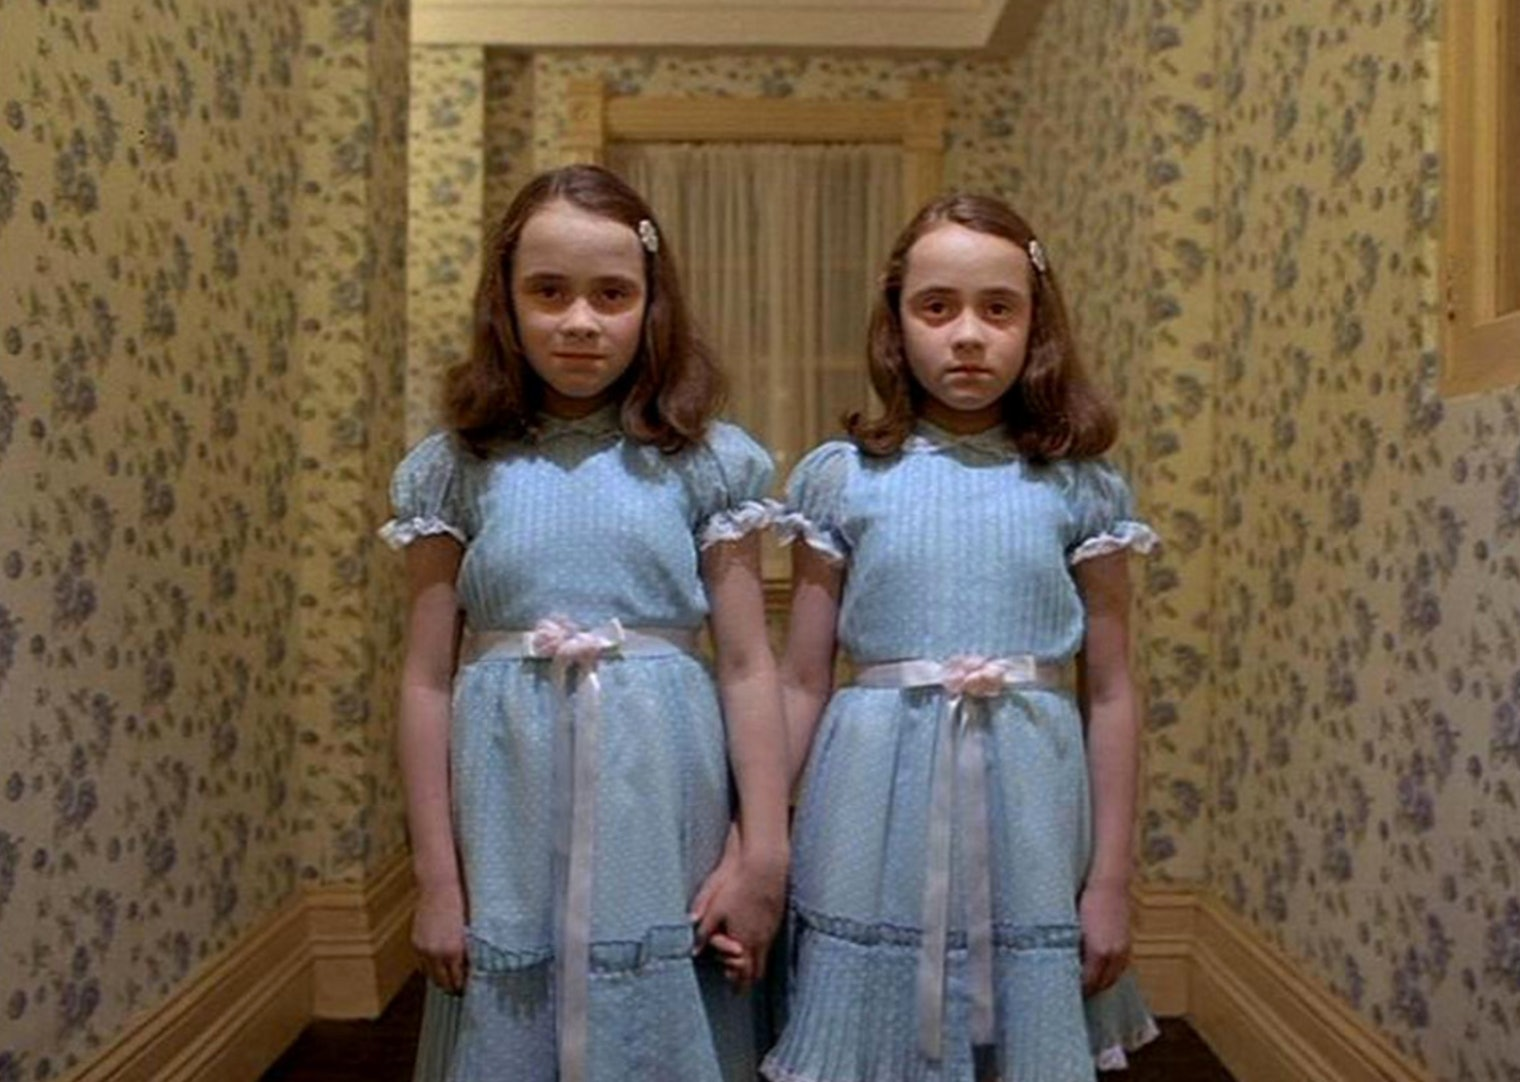 16 Creepy Child Horror Movies That Will Make You Not Want